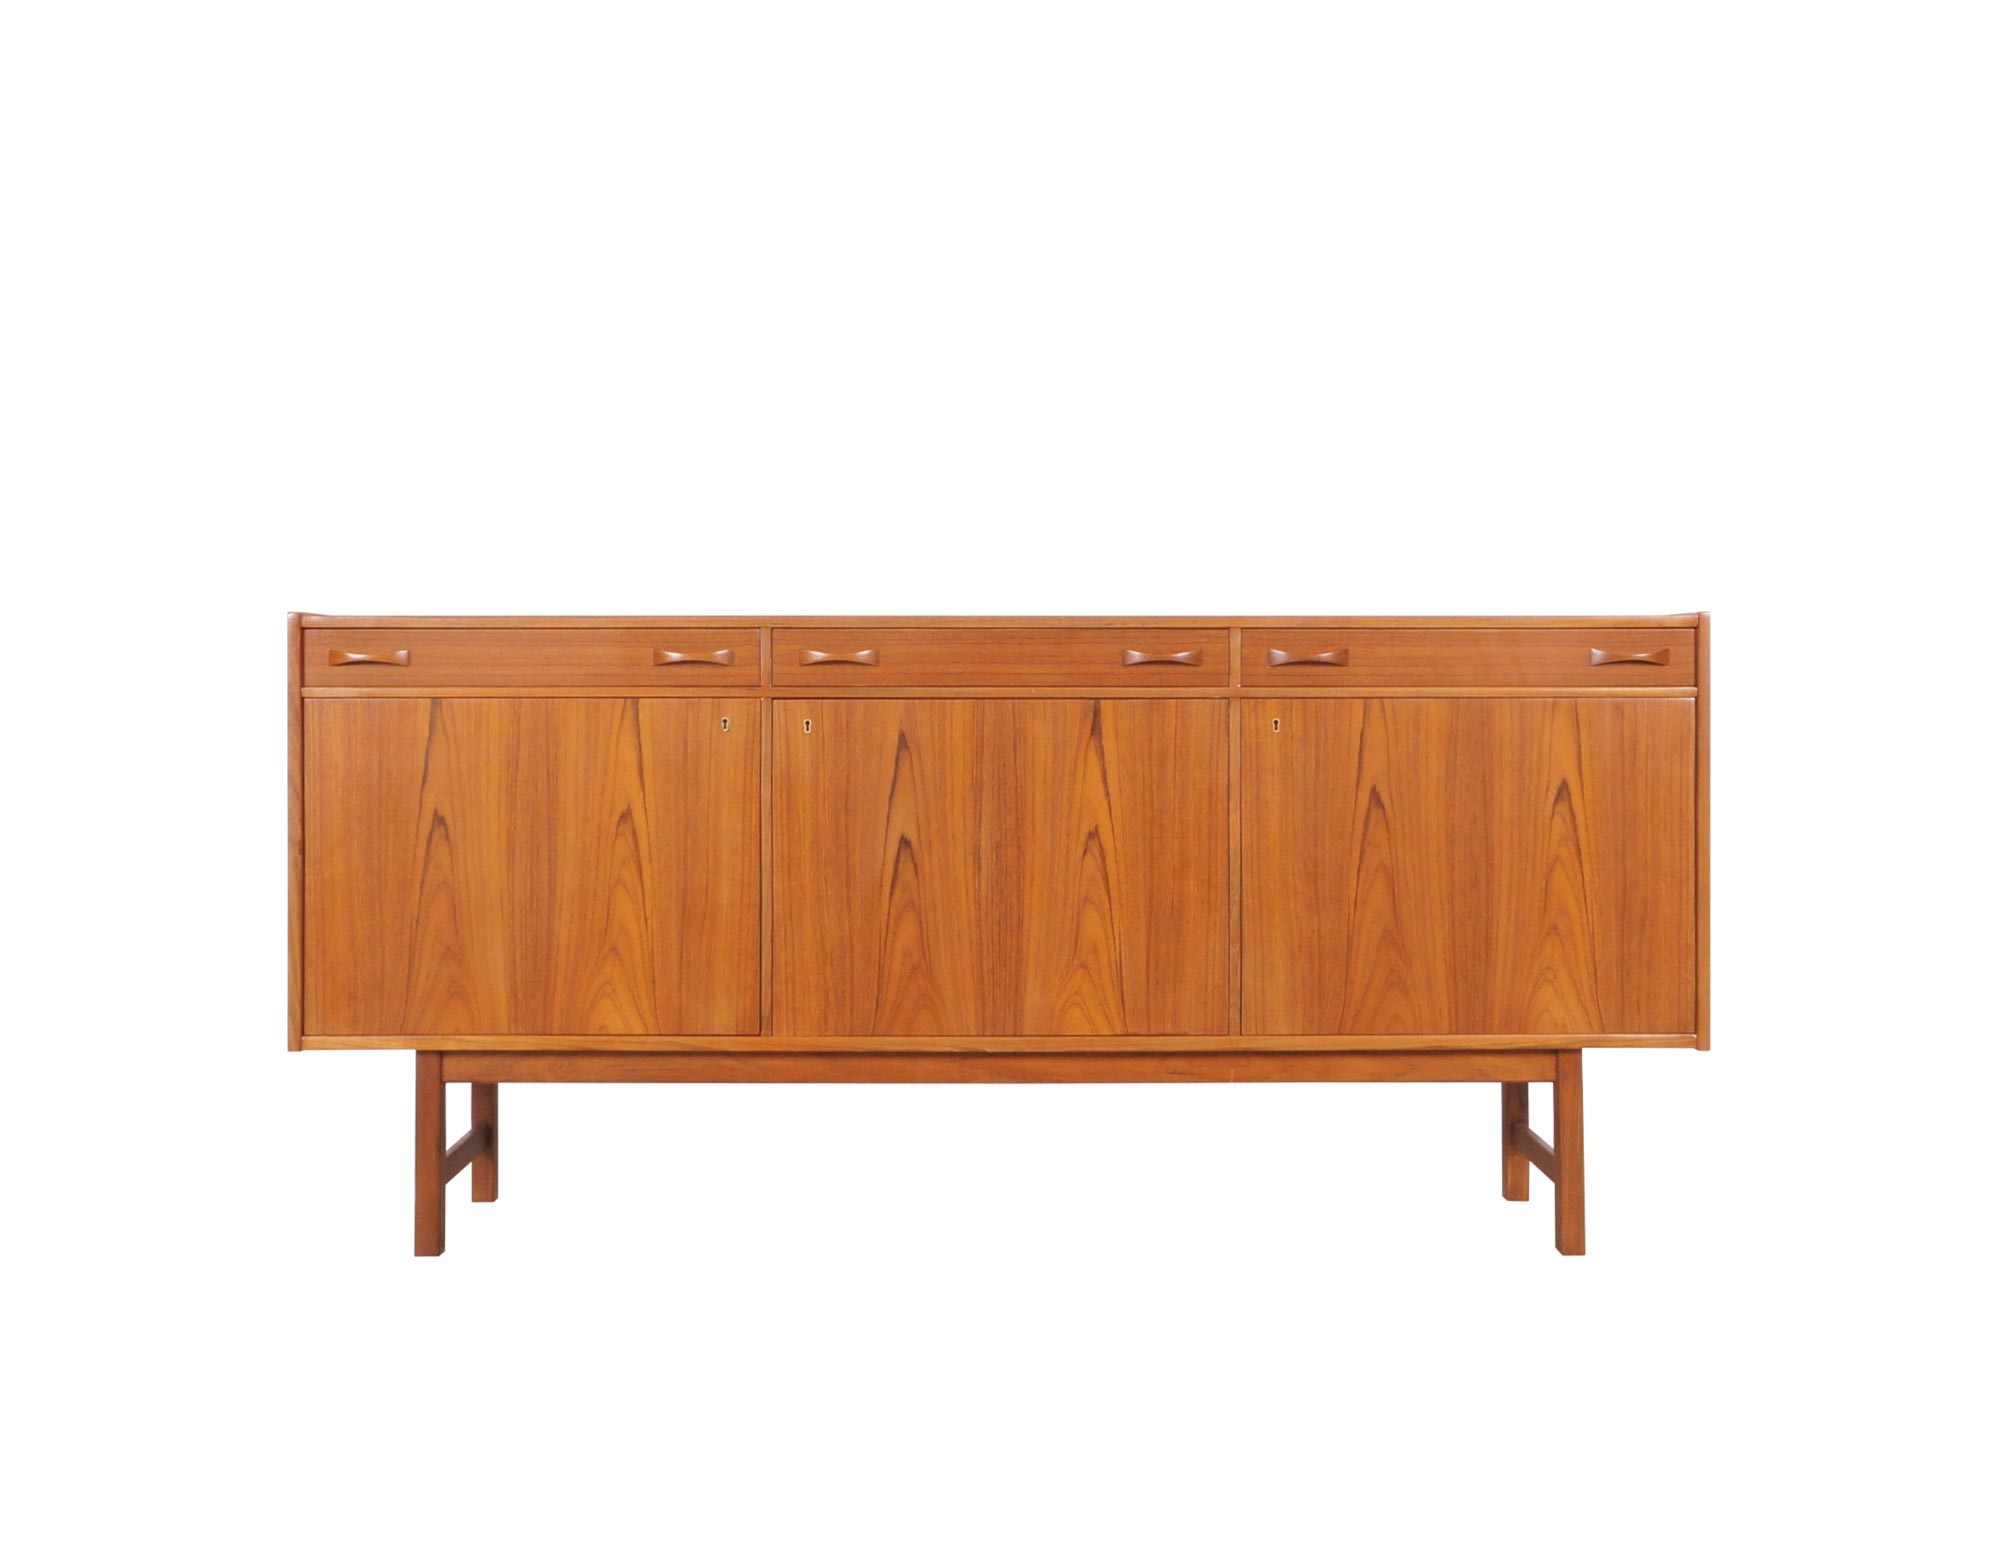 Swedish Teak Sideboard by Tage Olofsson for Ulferts Mobler